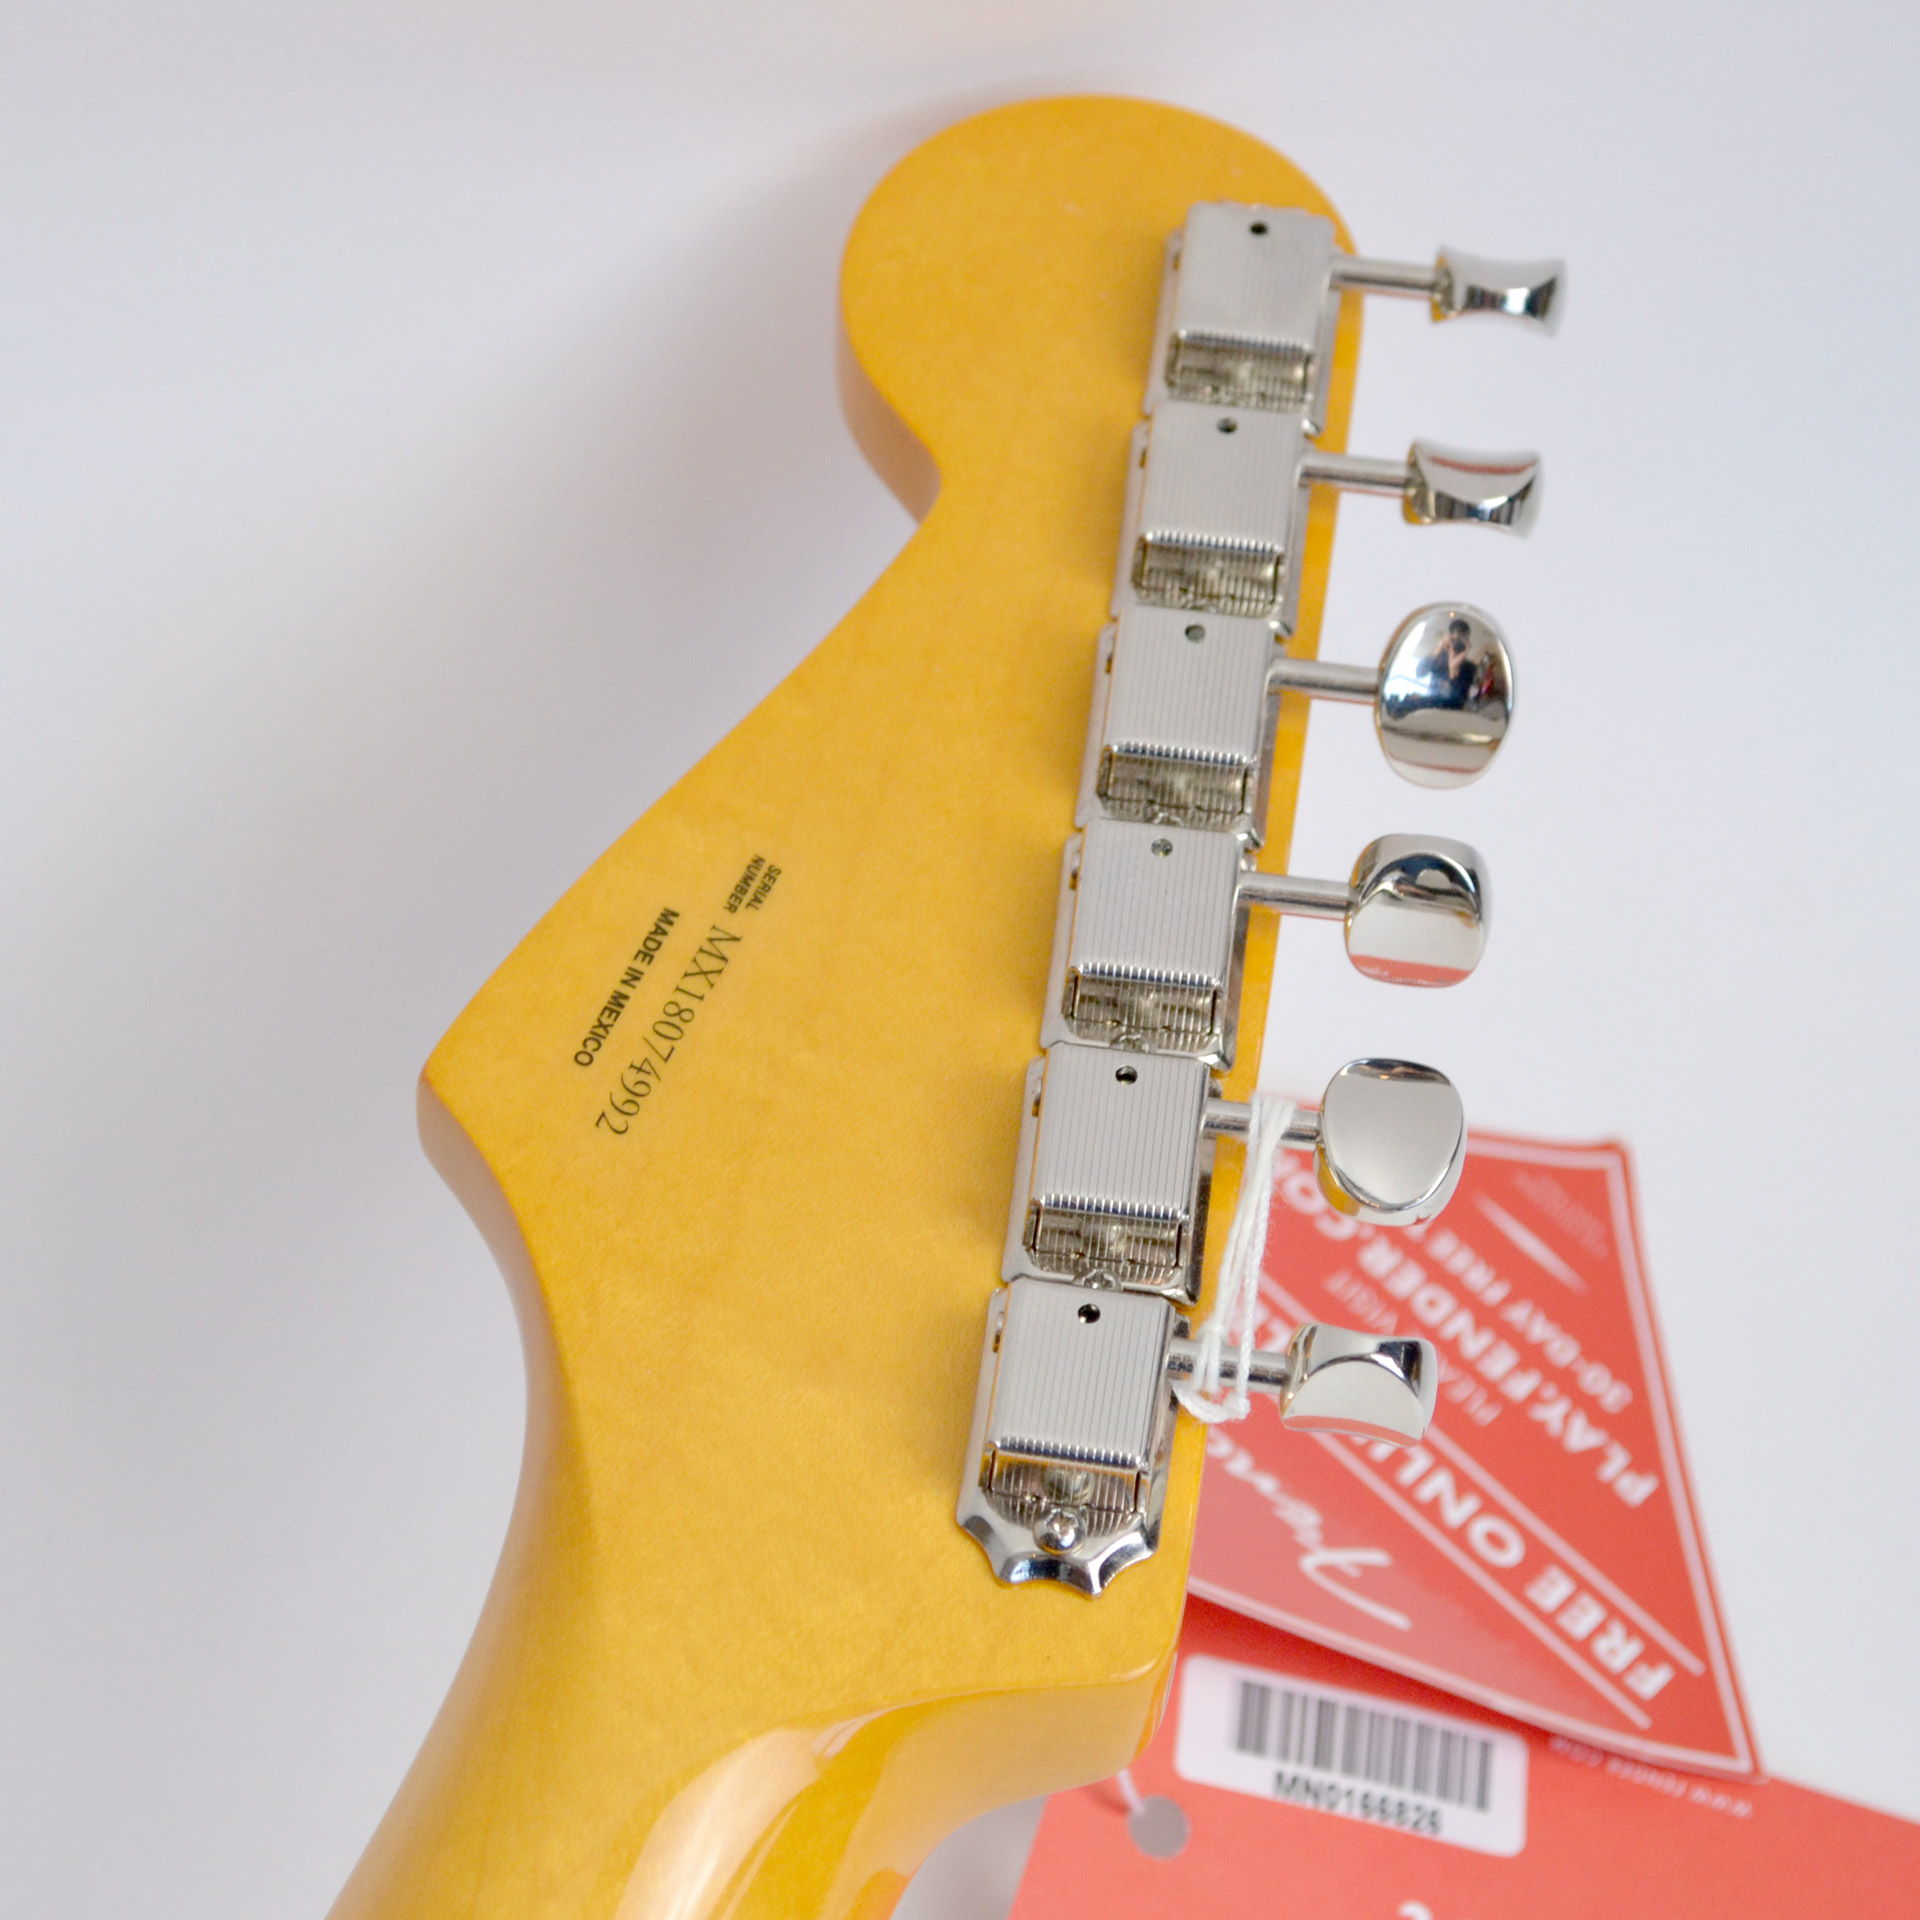 50s STRAT LACQUER MNのケース・その他画像